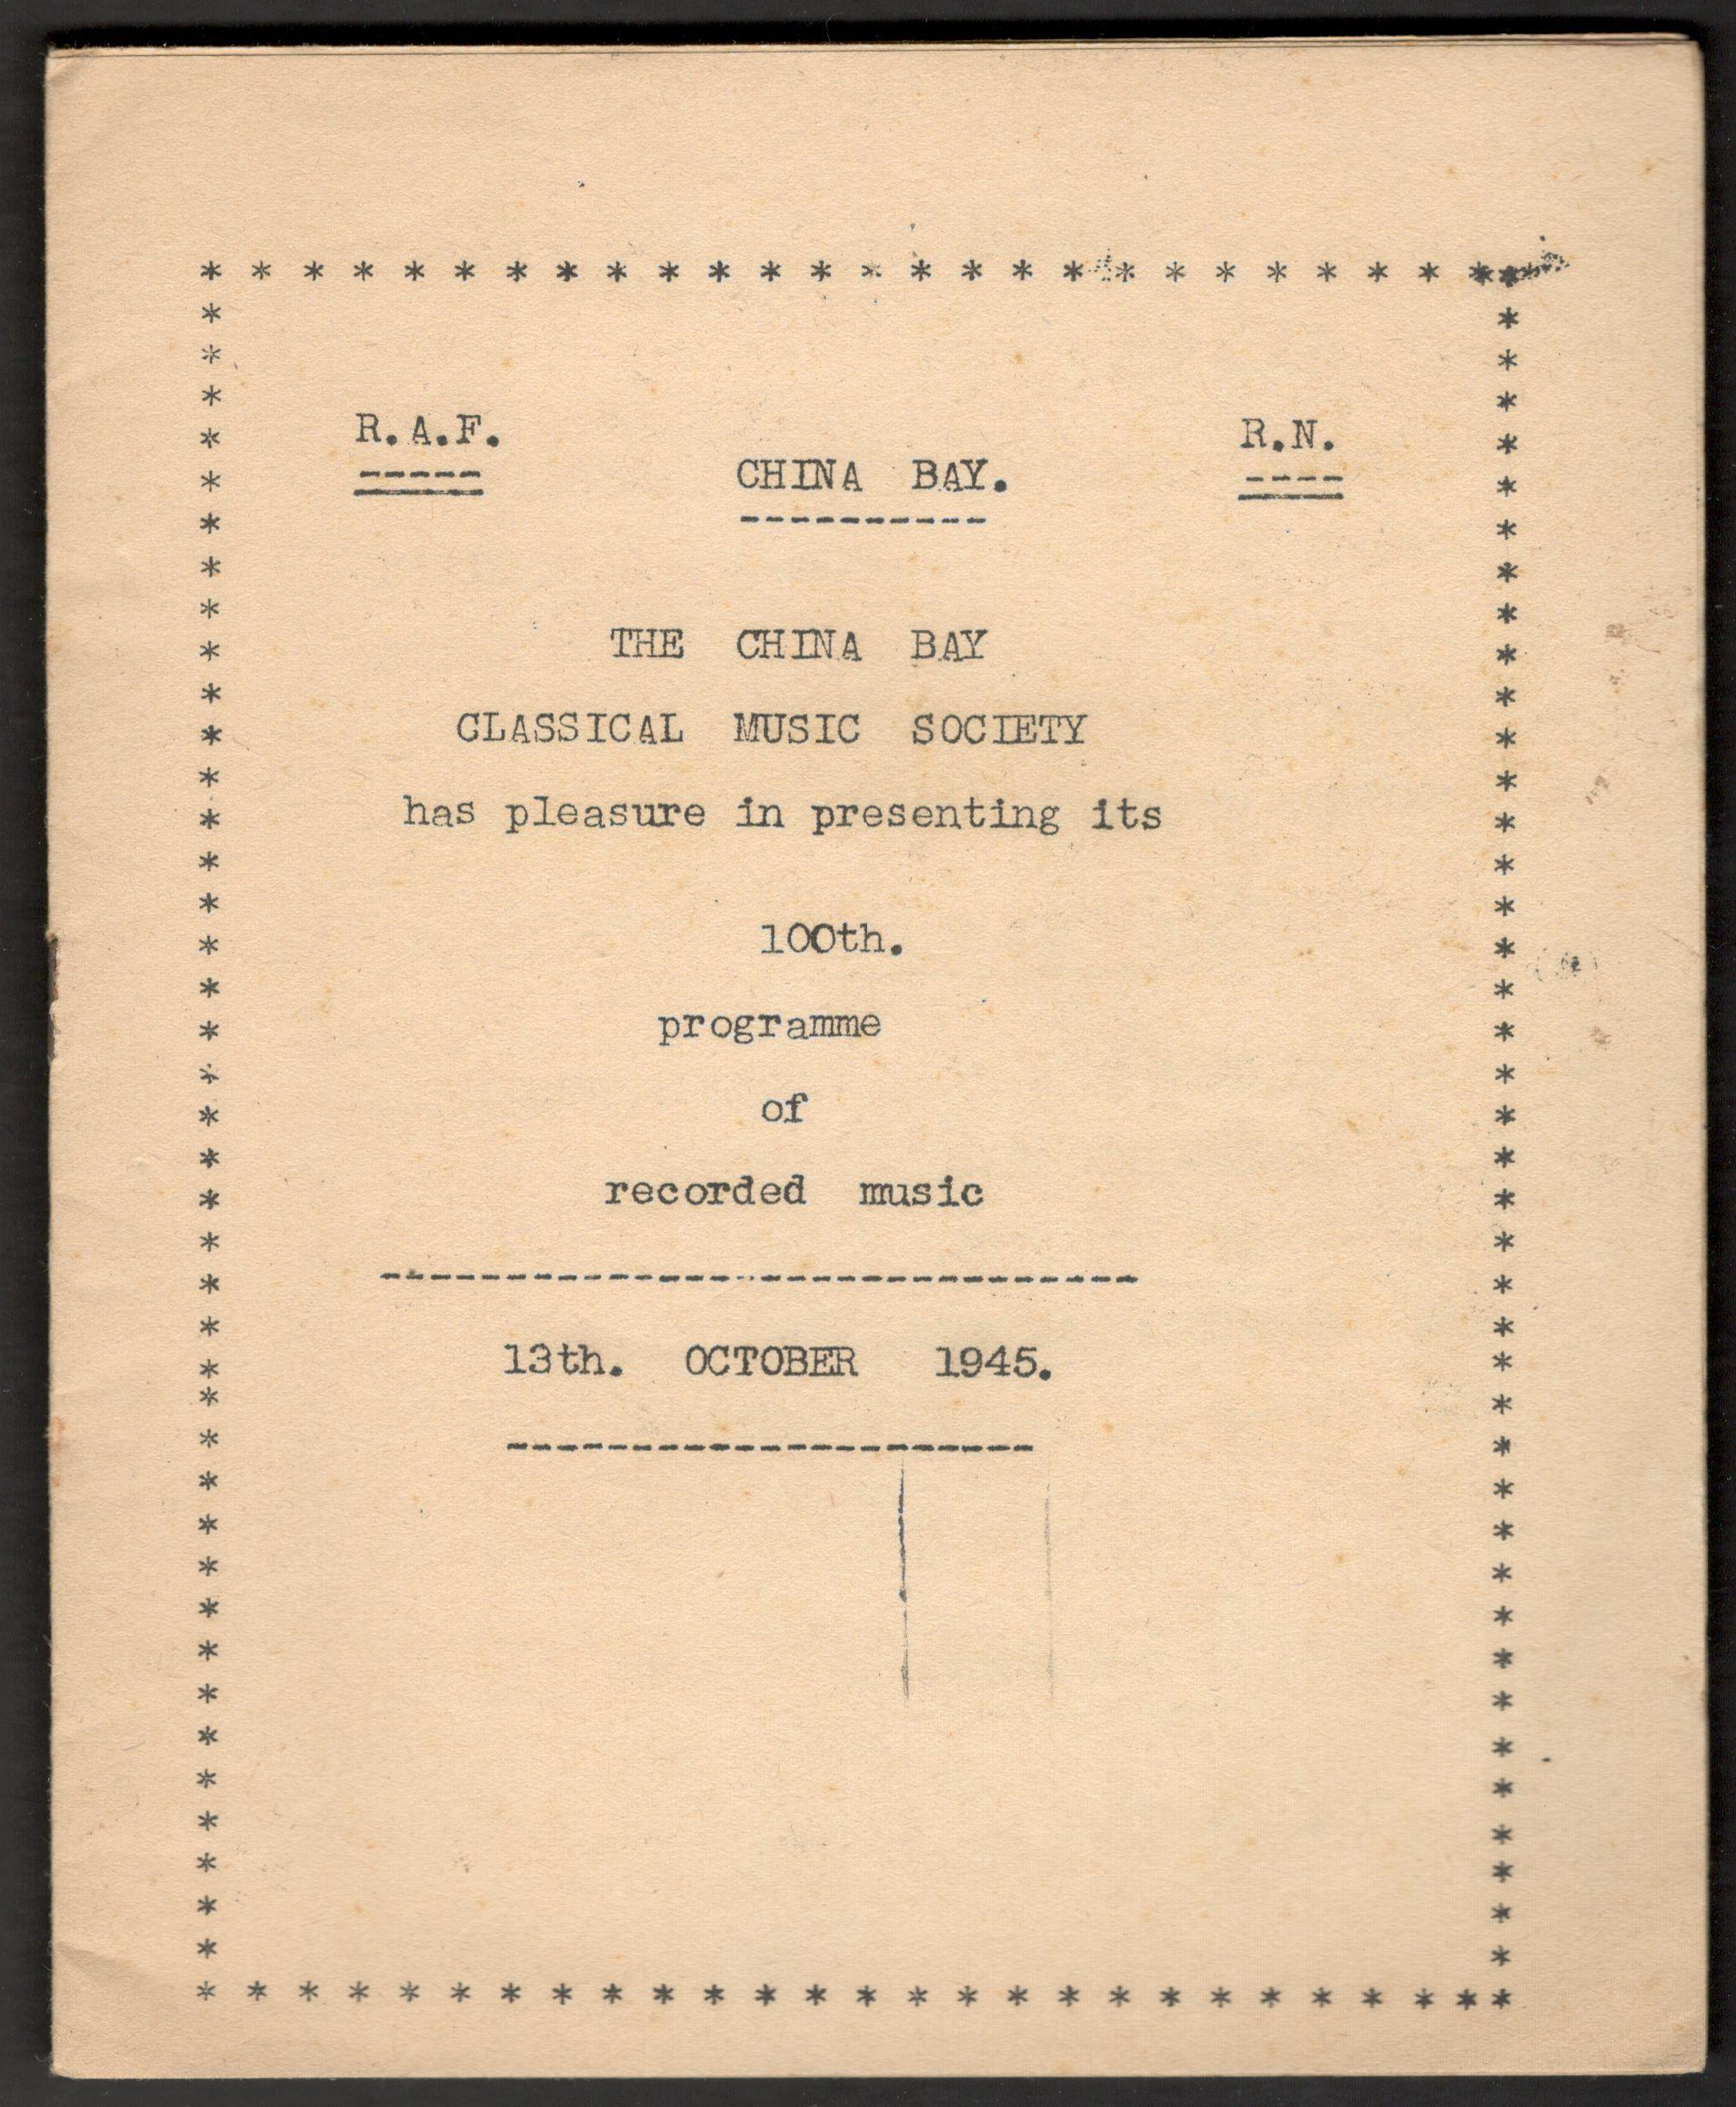 Lot 24 - 1945 R.A.F. & R.N. THE CHINA BAY CLASSICAL MUSIC SOCIETY 100th PROGRAMME OF RECORDED MUSIC